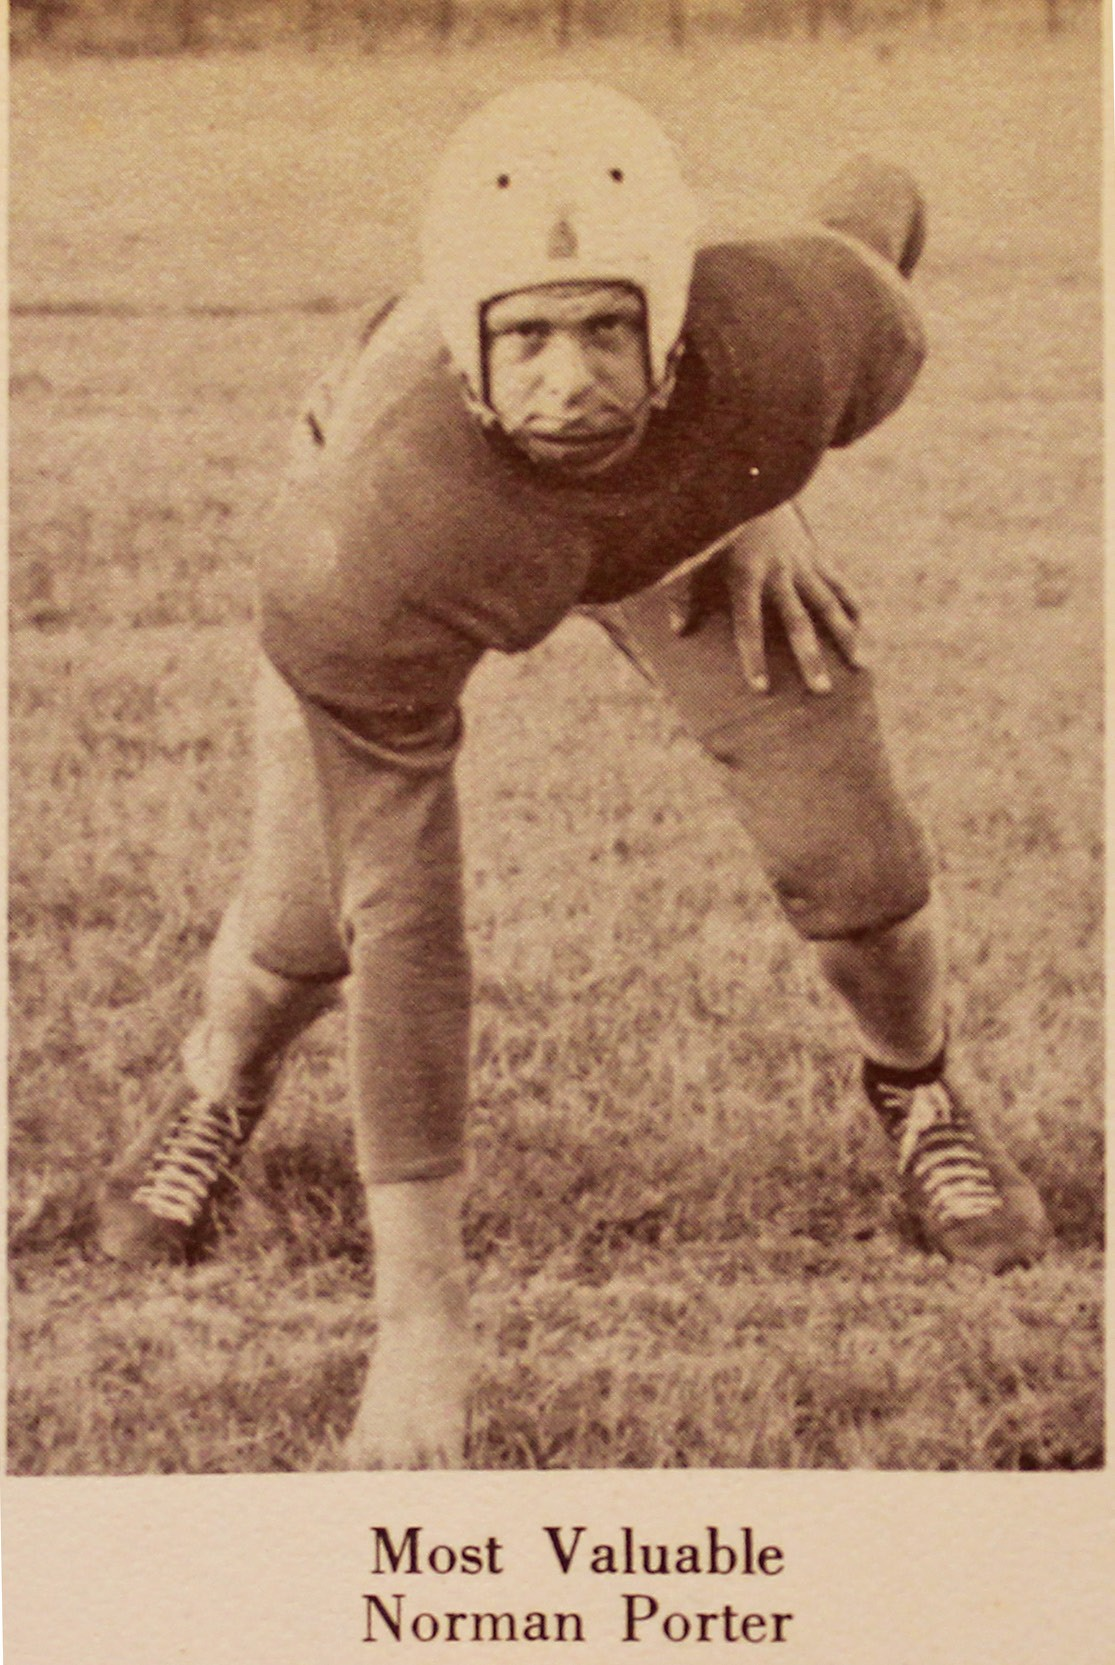 Picture in 1950 Pleasanton School Annual of Norman Porter, Most Valuable football player being pointed out by Marvin Deckert in his annual. Deckert was a freshman in 1950.